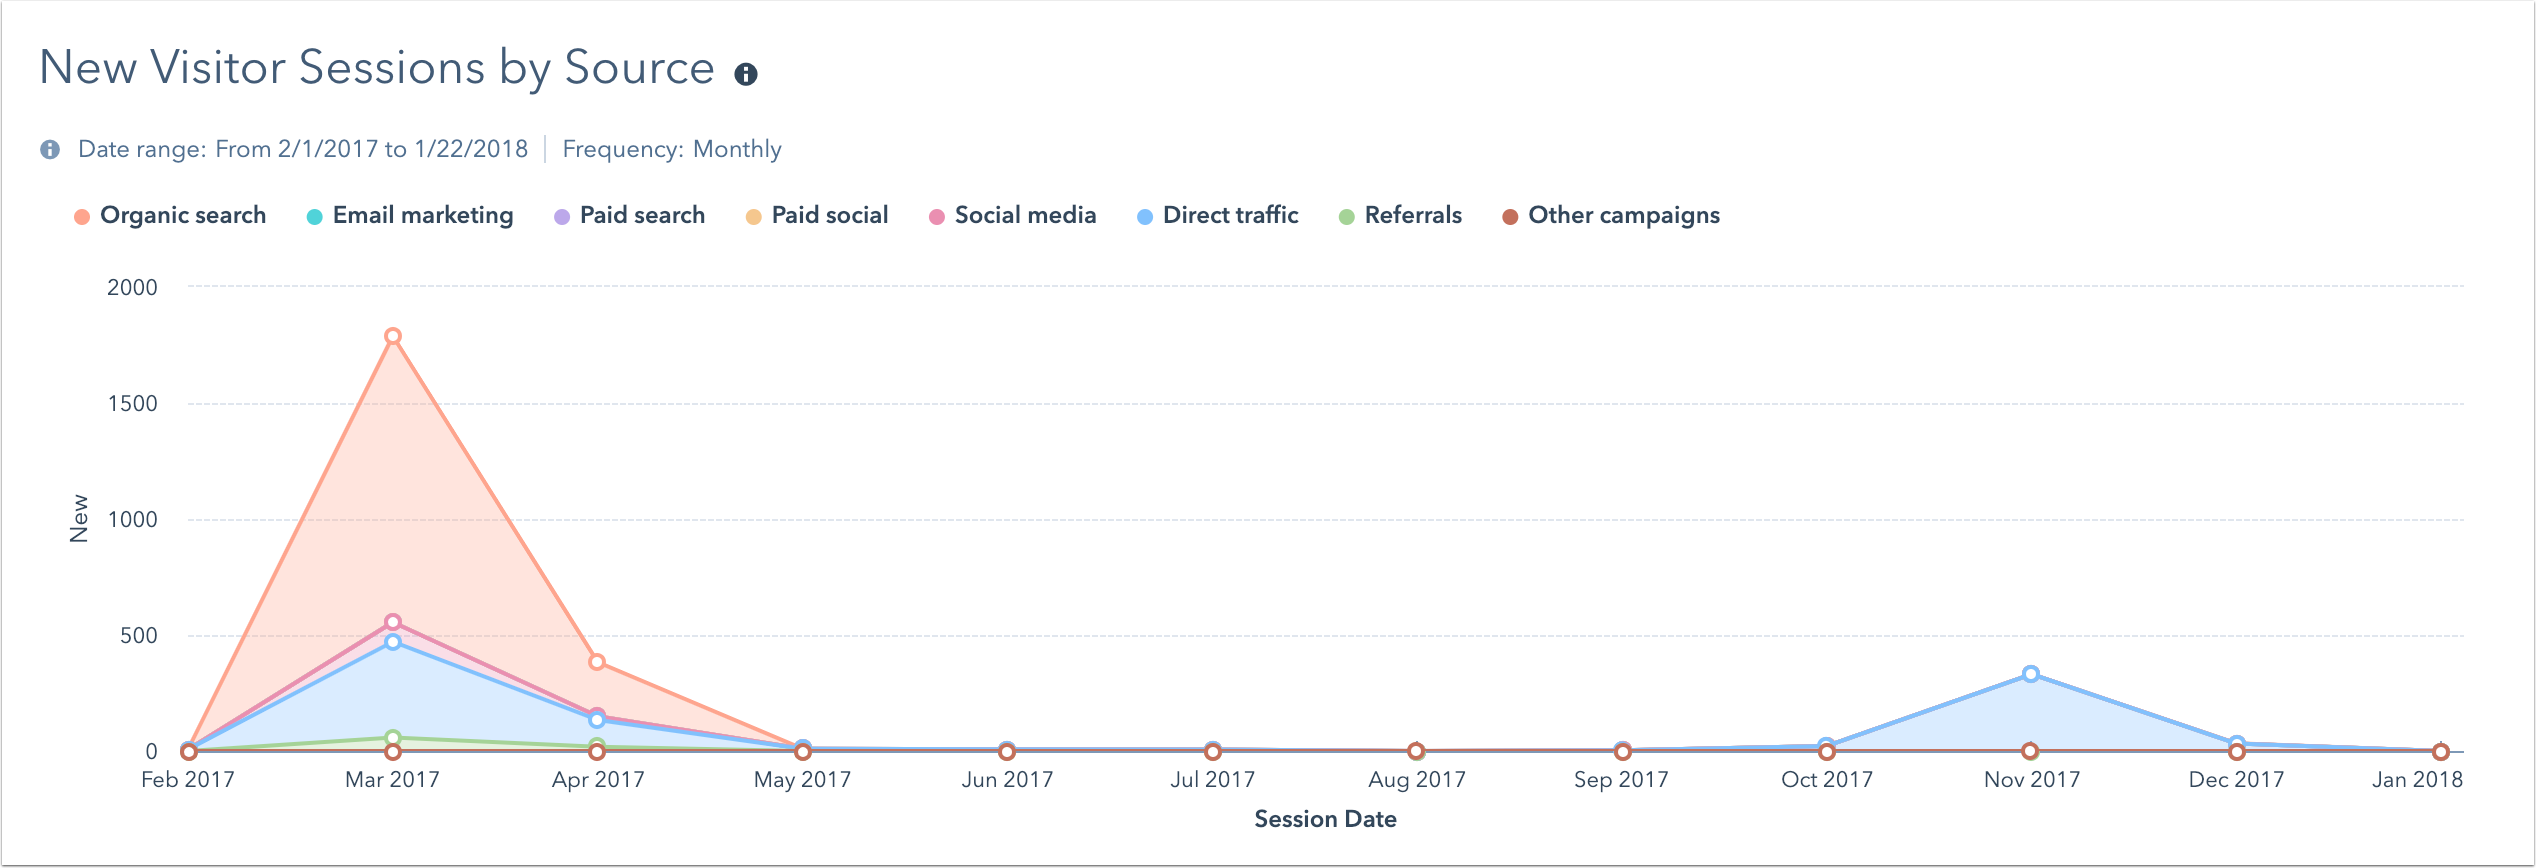 web-analytics-dash-new-visitor-sessions-by-source